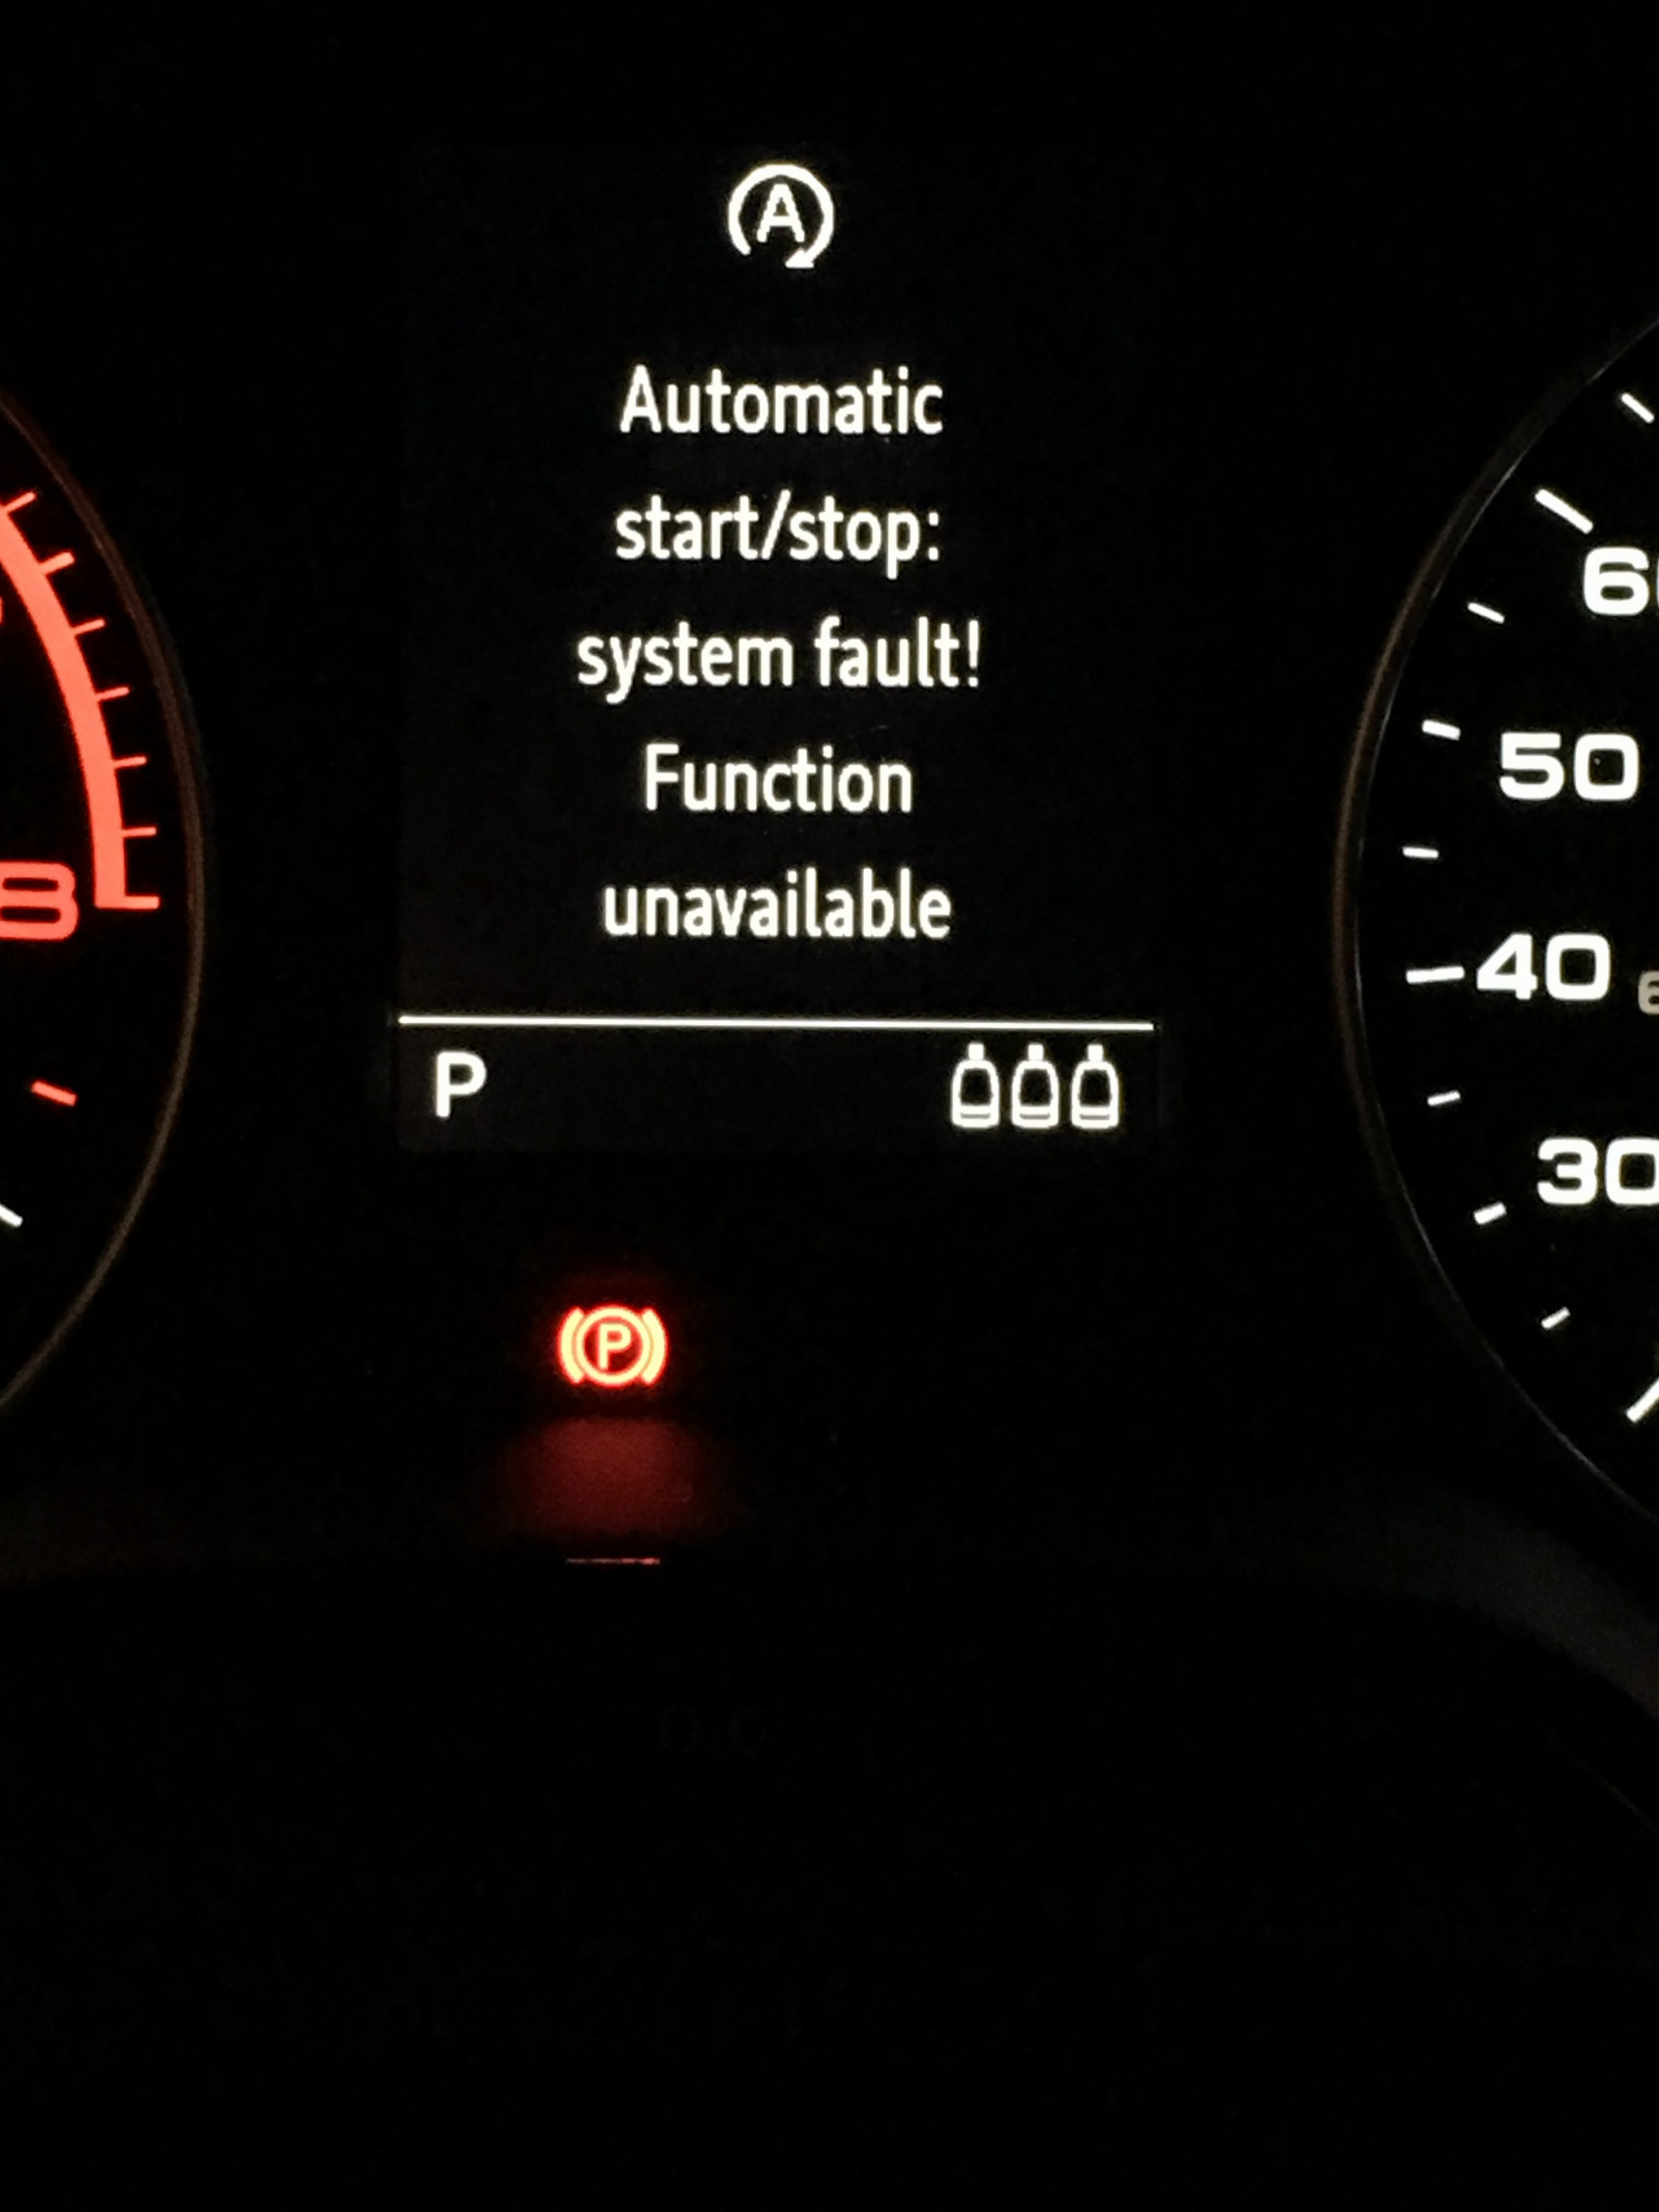 Automatic start/stop: system fault! Function unavailable